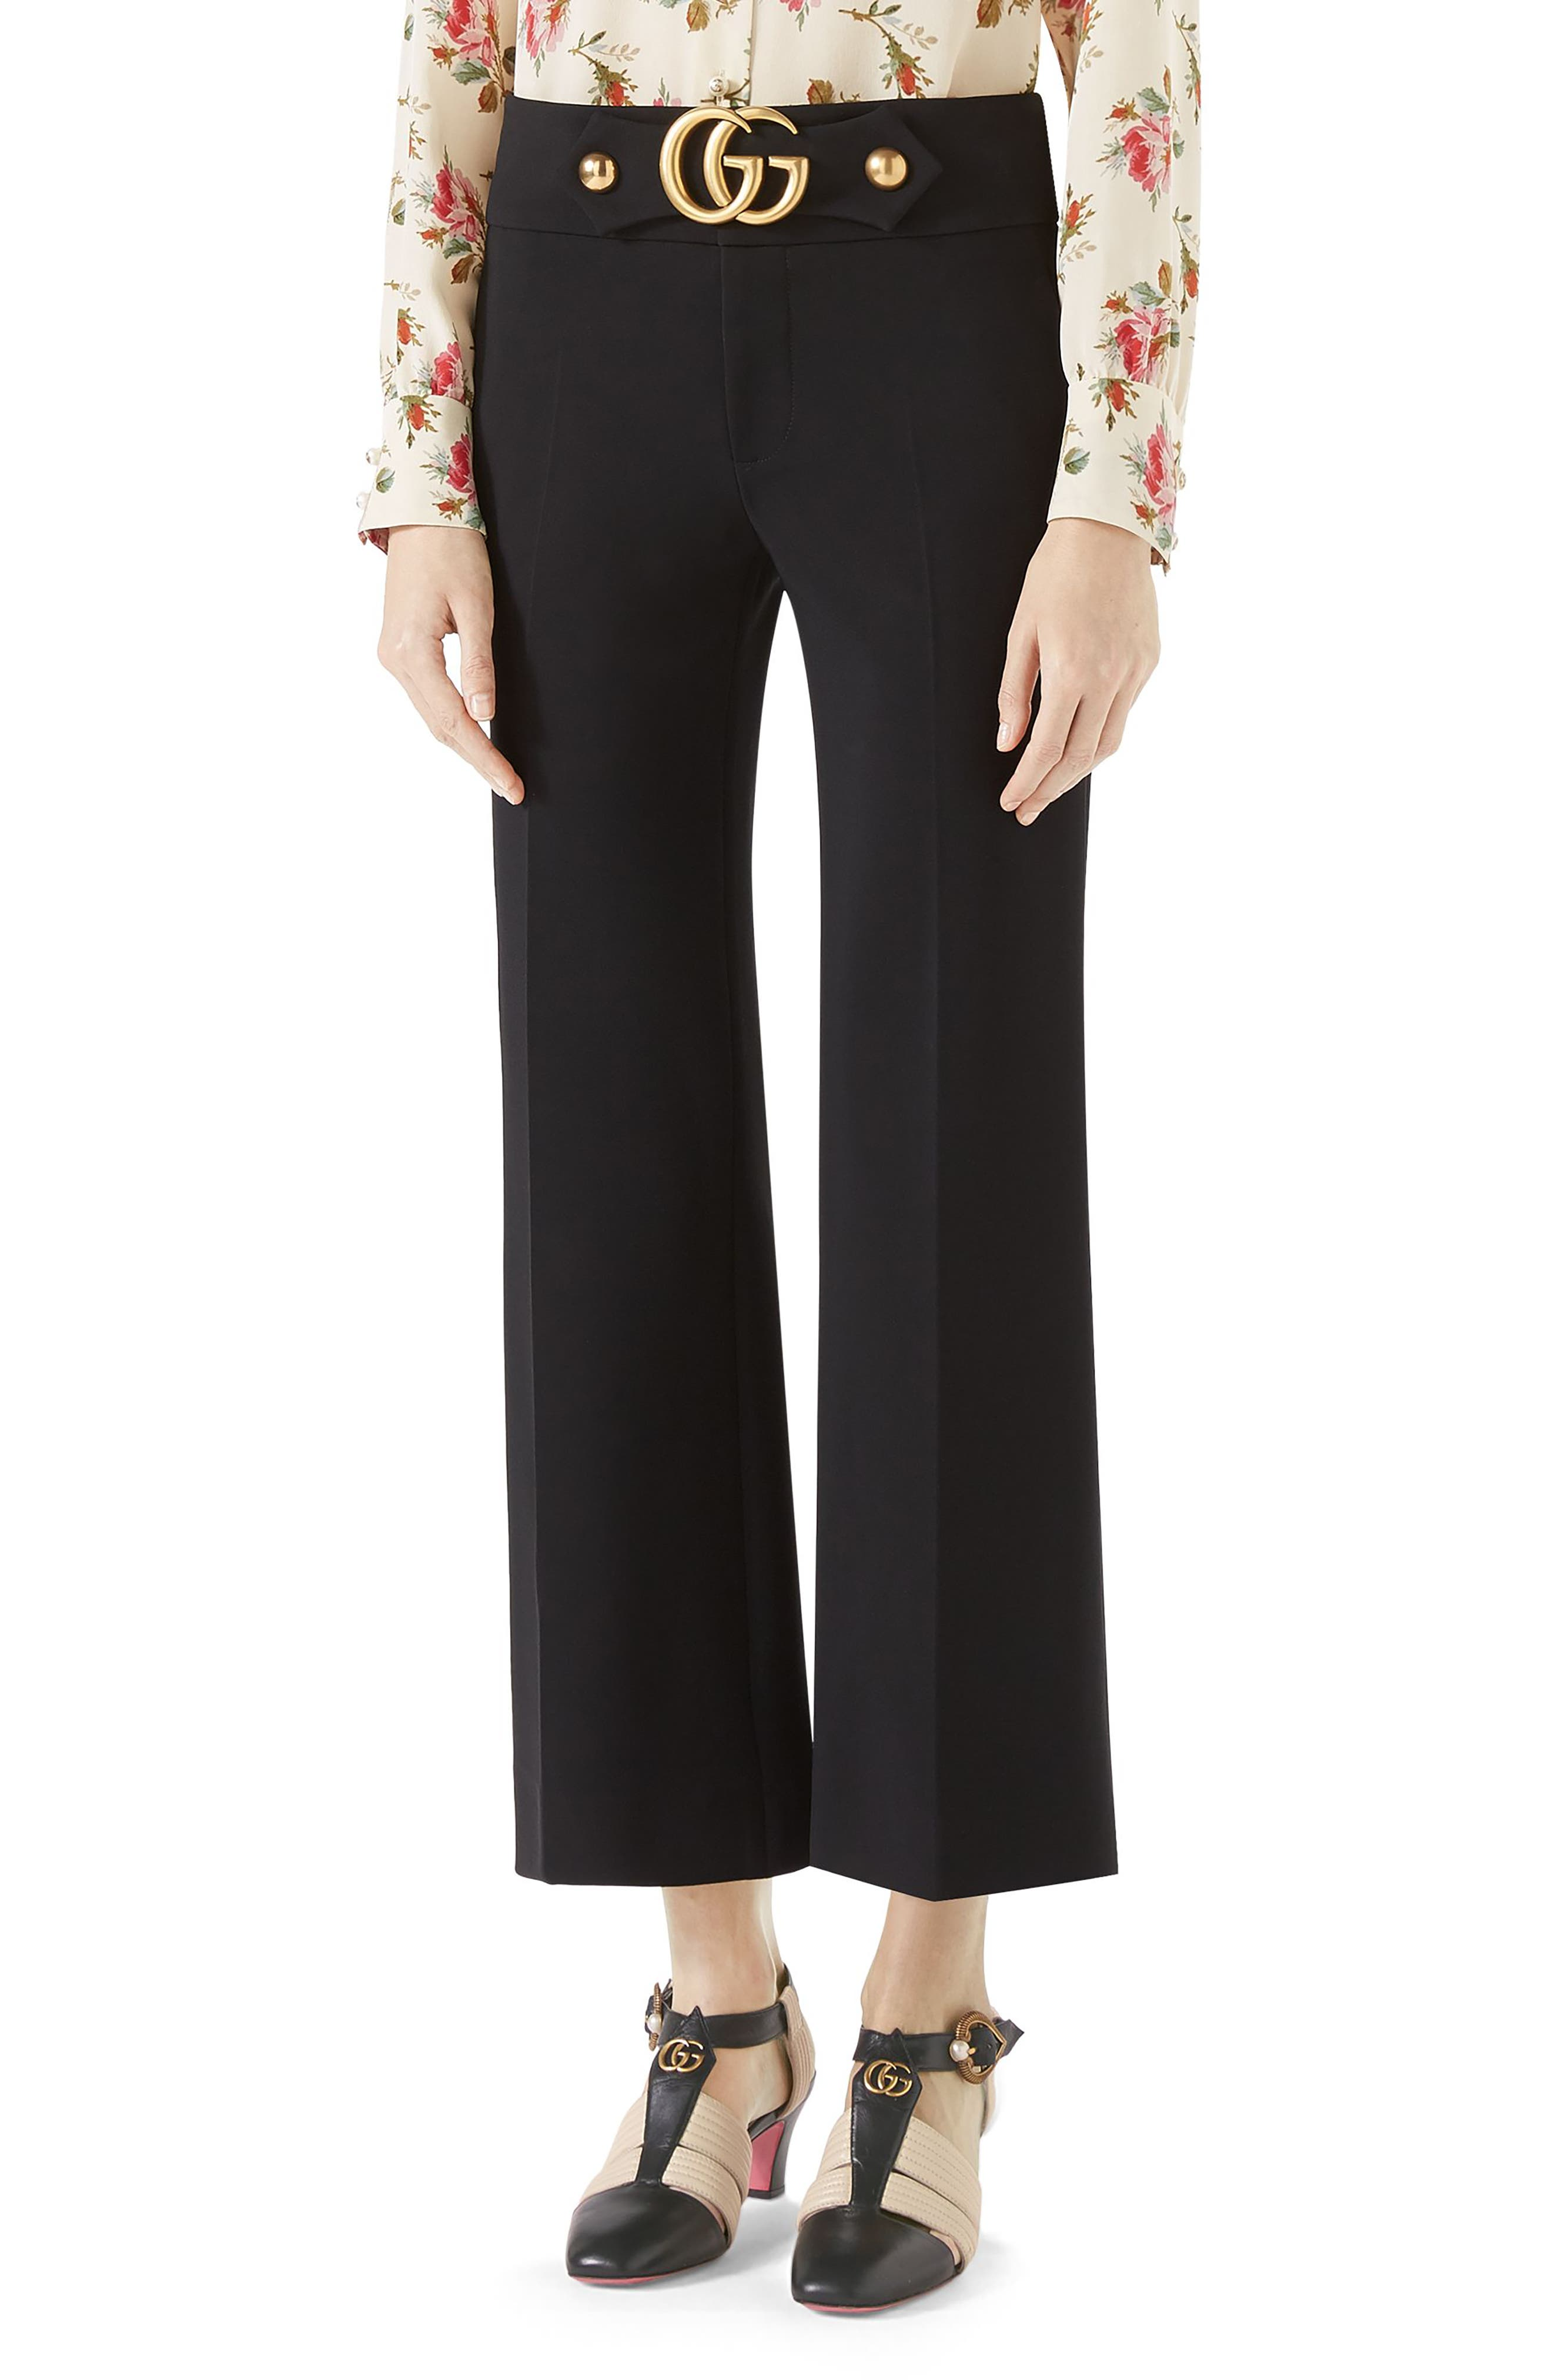 Main Image - Gucci Marmont Stretch Jersey Crop Pants